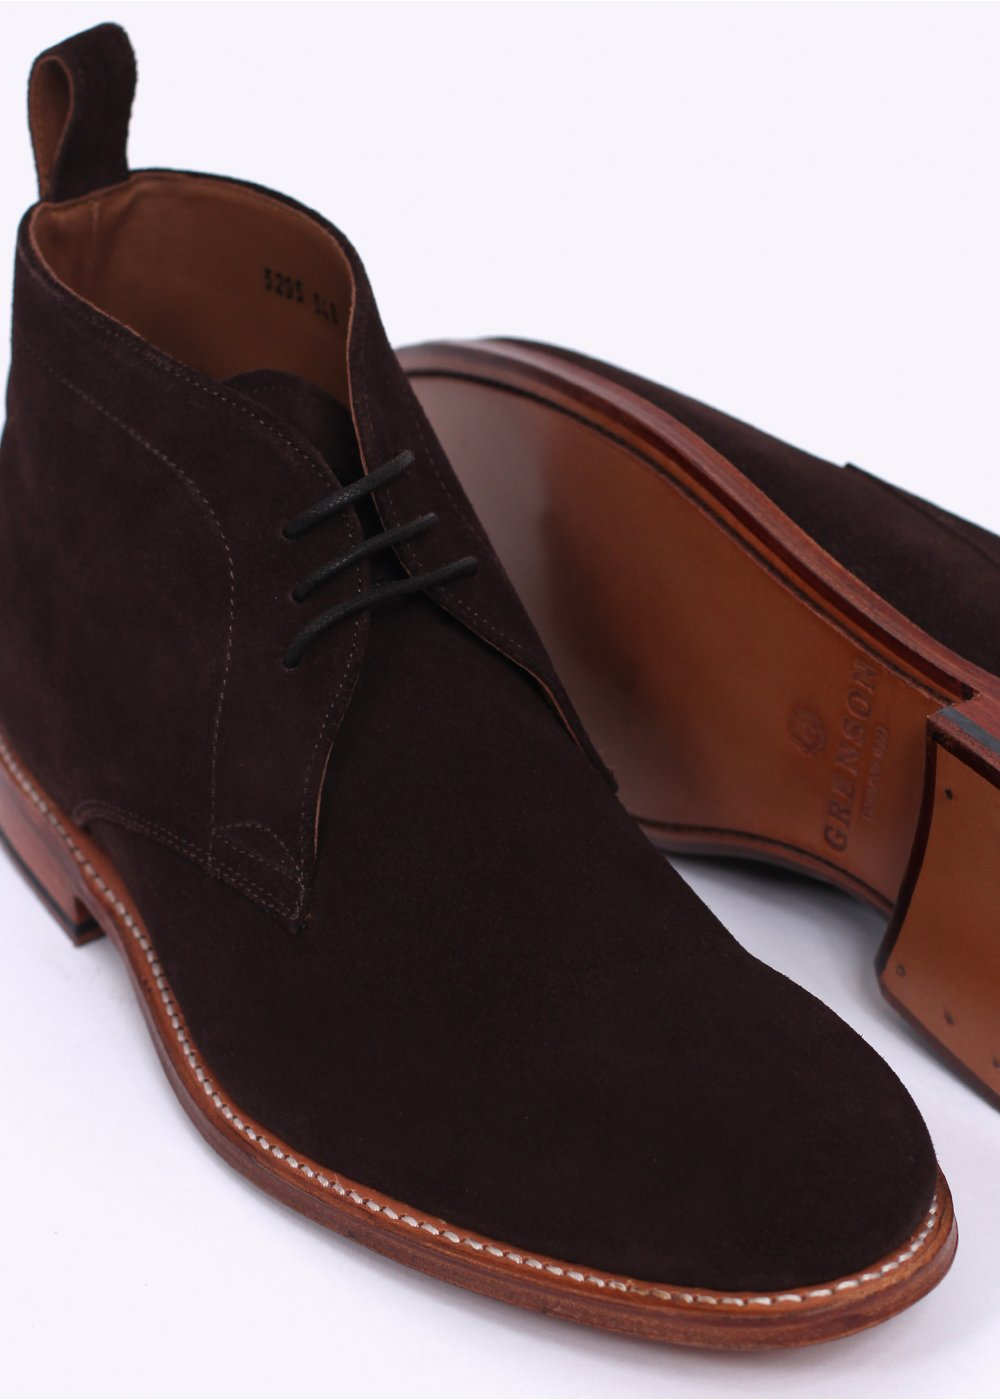 grenson suede chukka boot chocolate brown